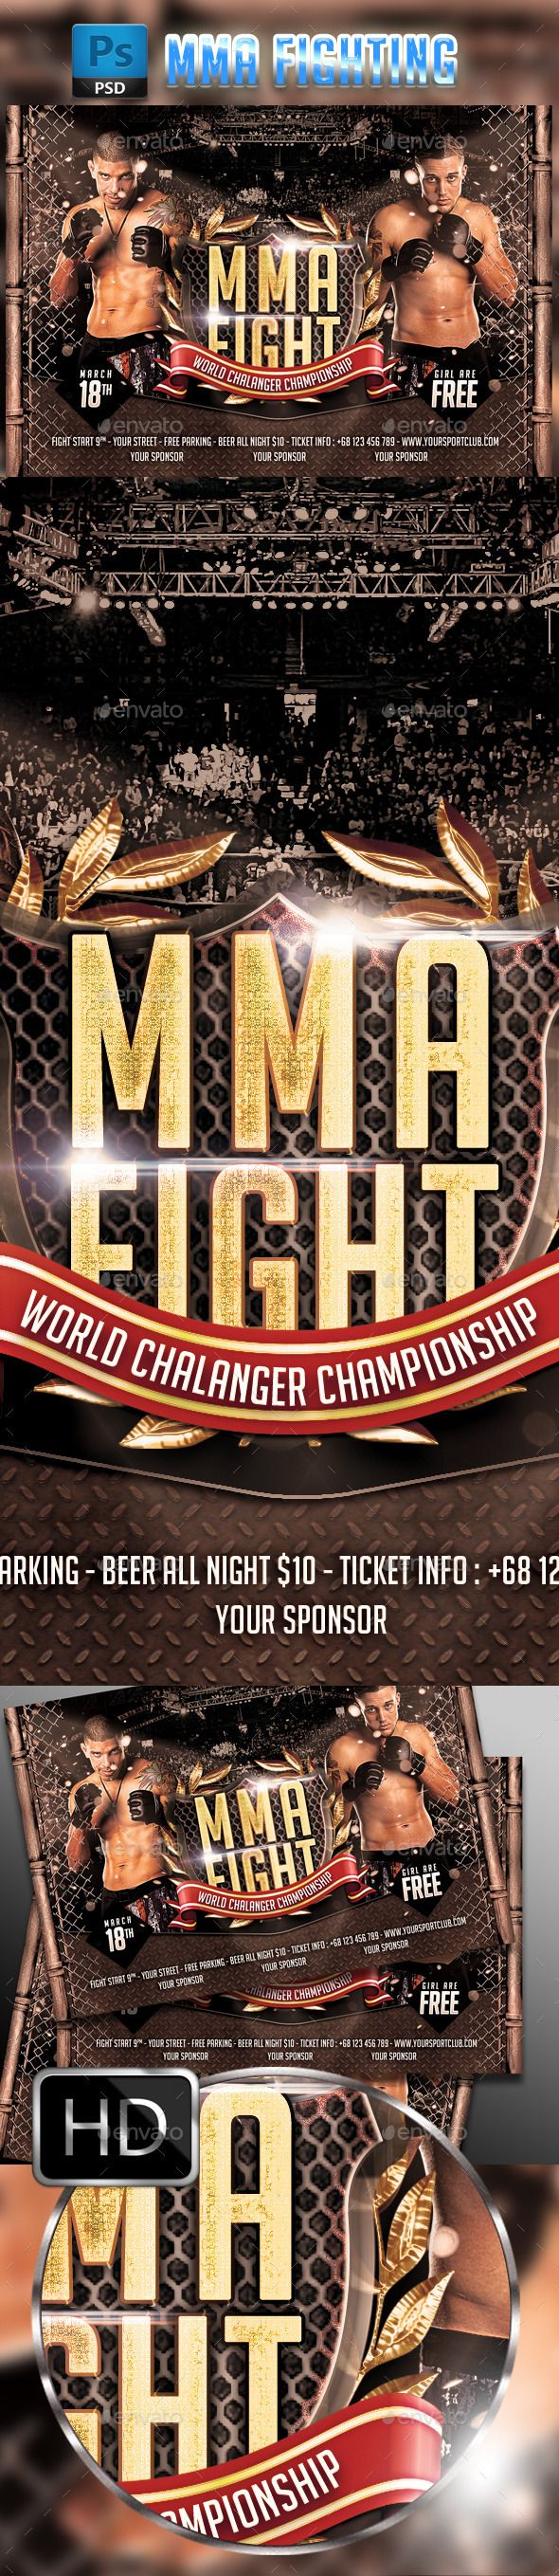 MMA Fighting Flyer Template #3